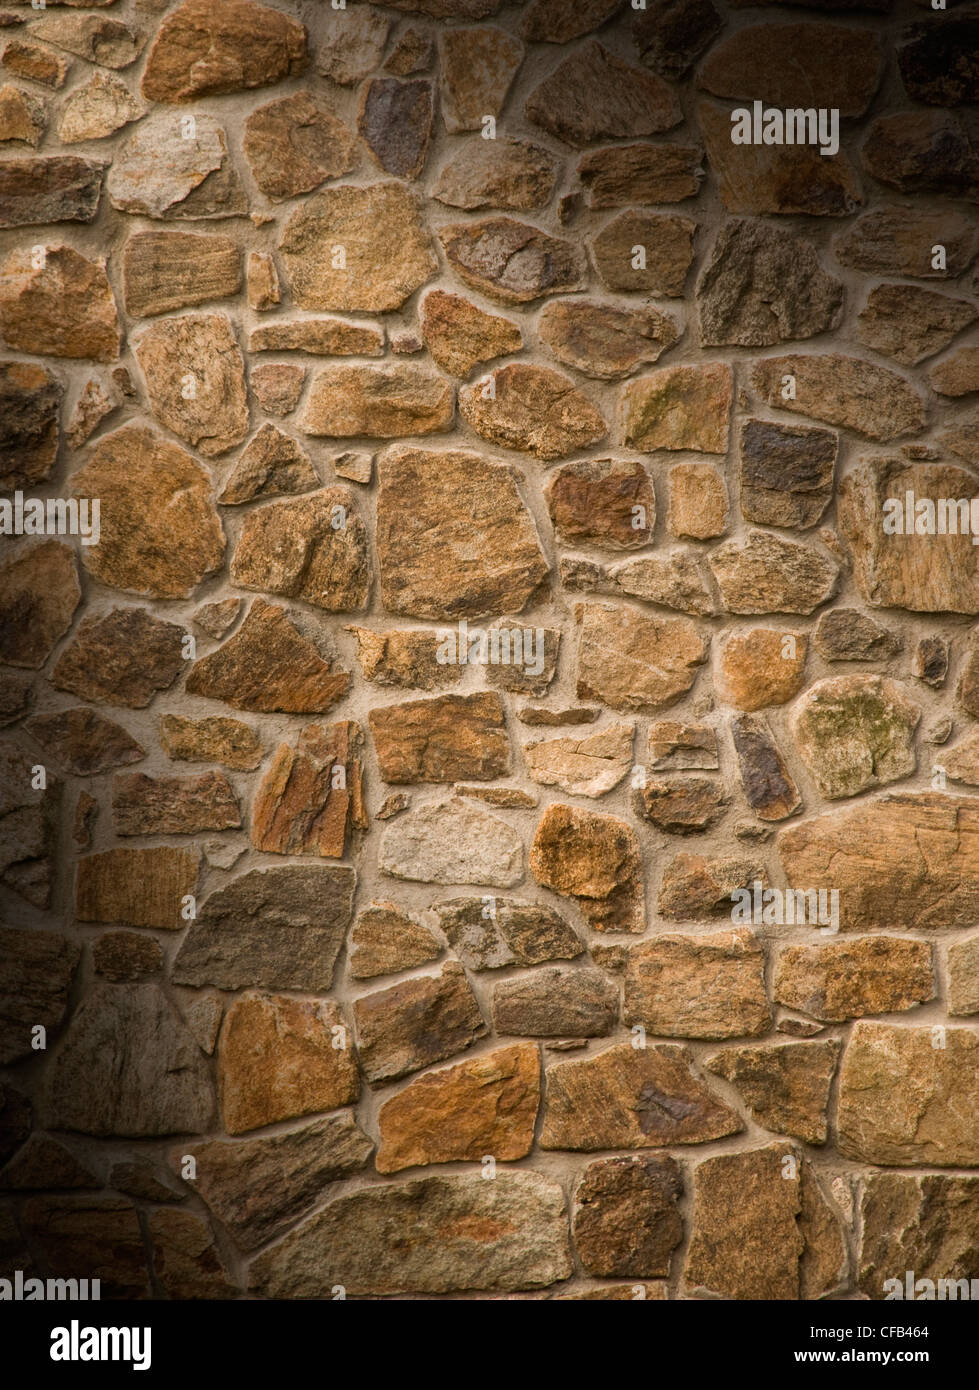 Brown masonry rock wall lit diagonally - Stock Image